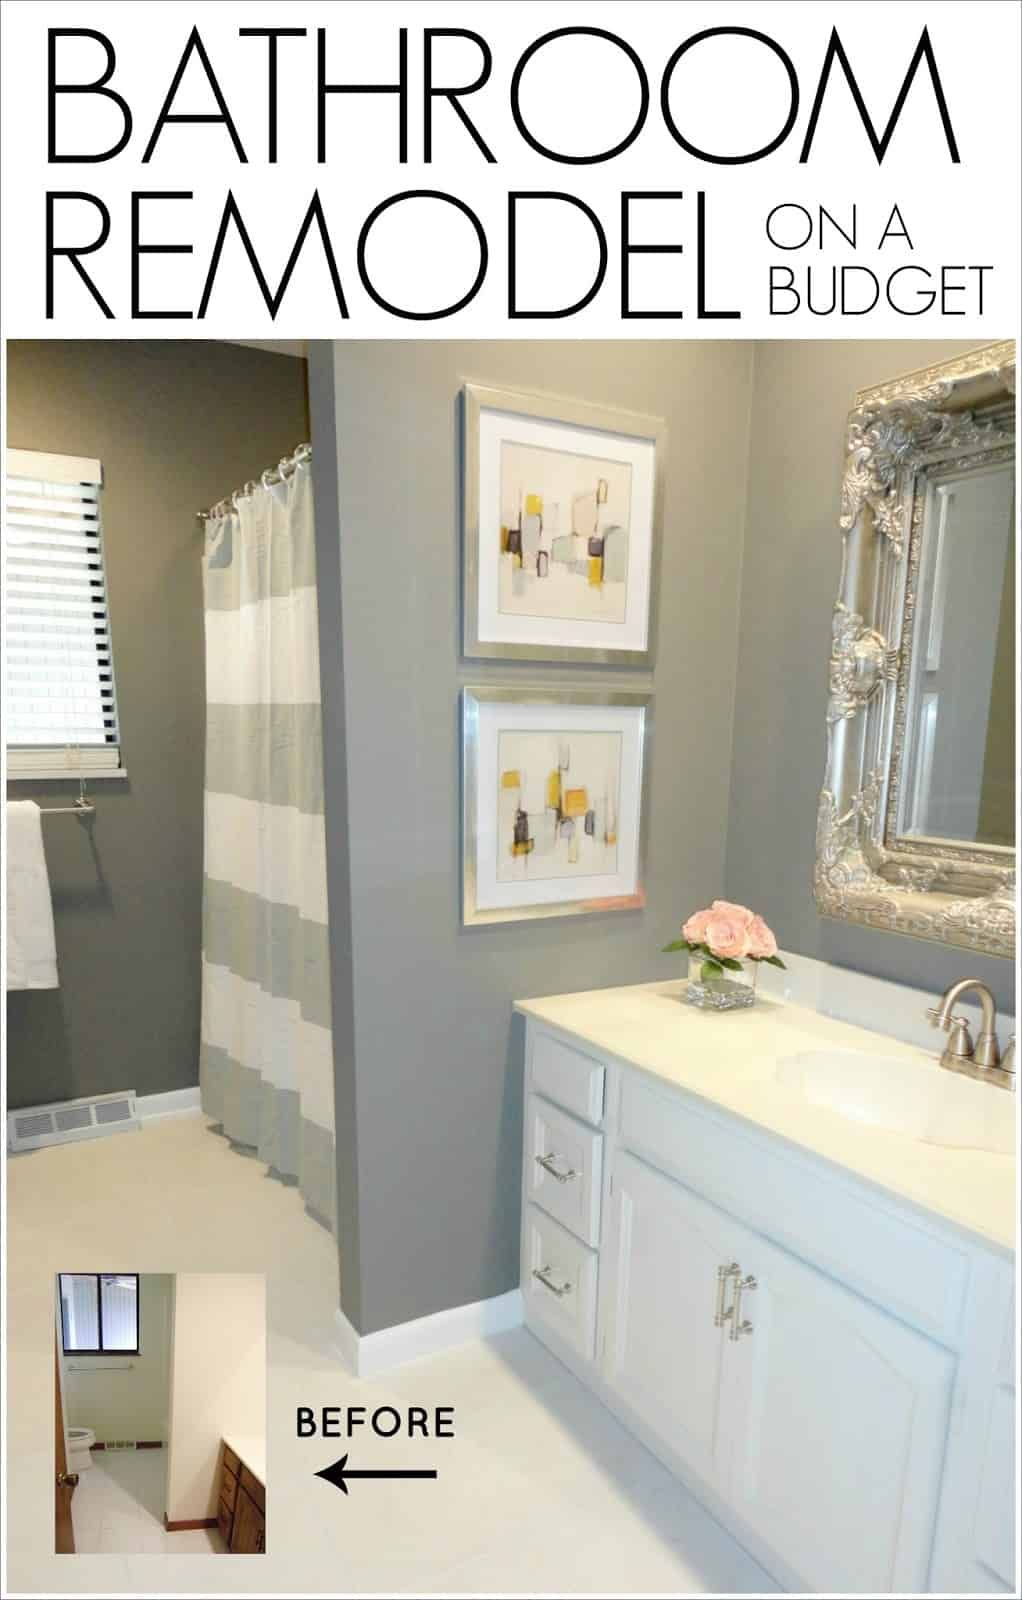 How To Budget For Home Remodelling Create A Renovation That Works Keep Your On